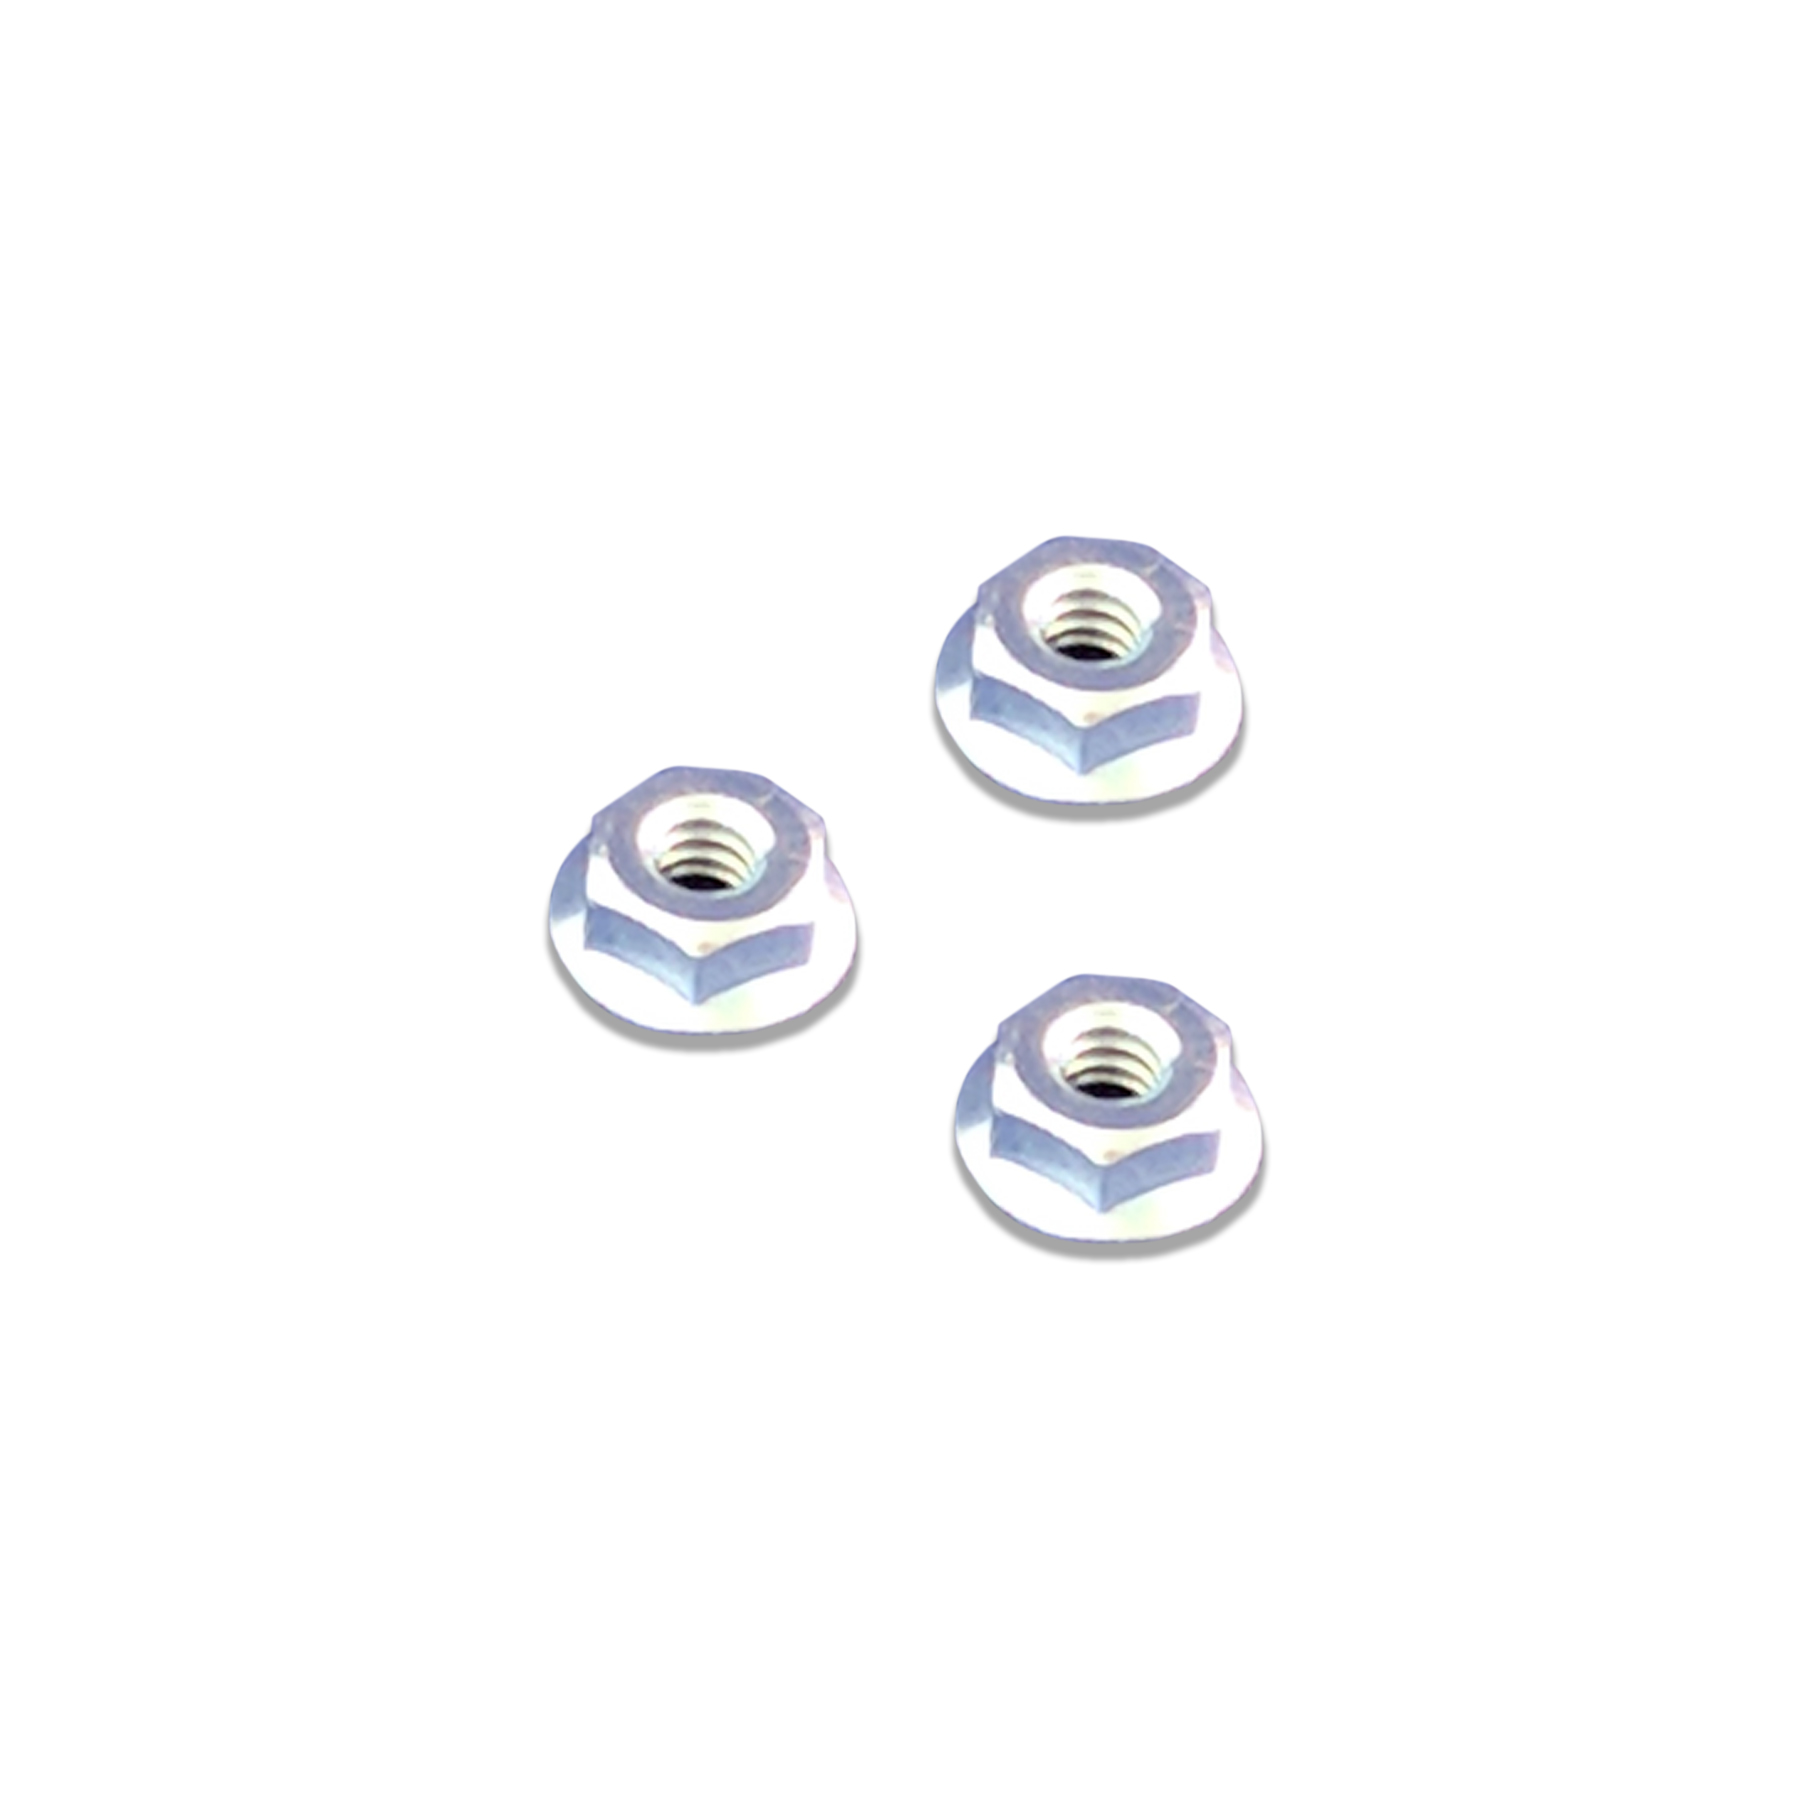 CONS Zinc Plated Flange Nut, #10-24